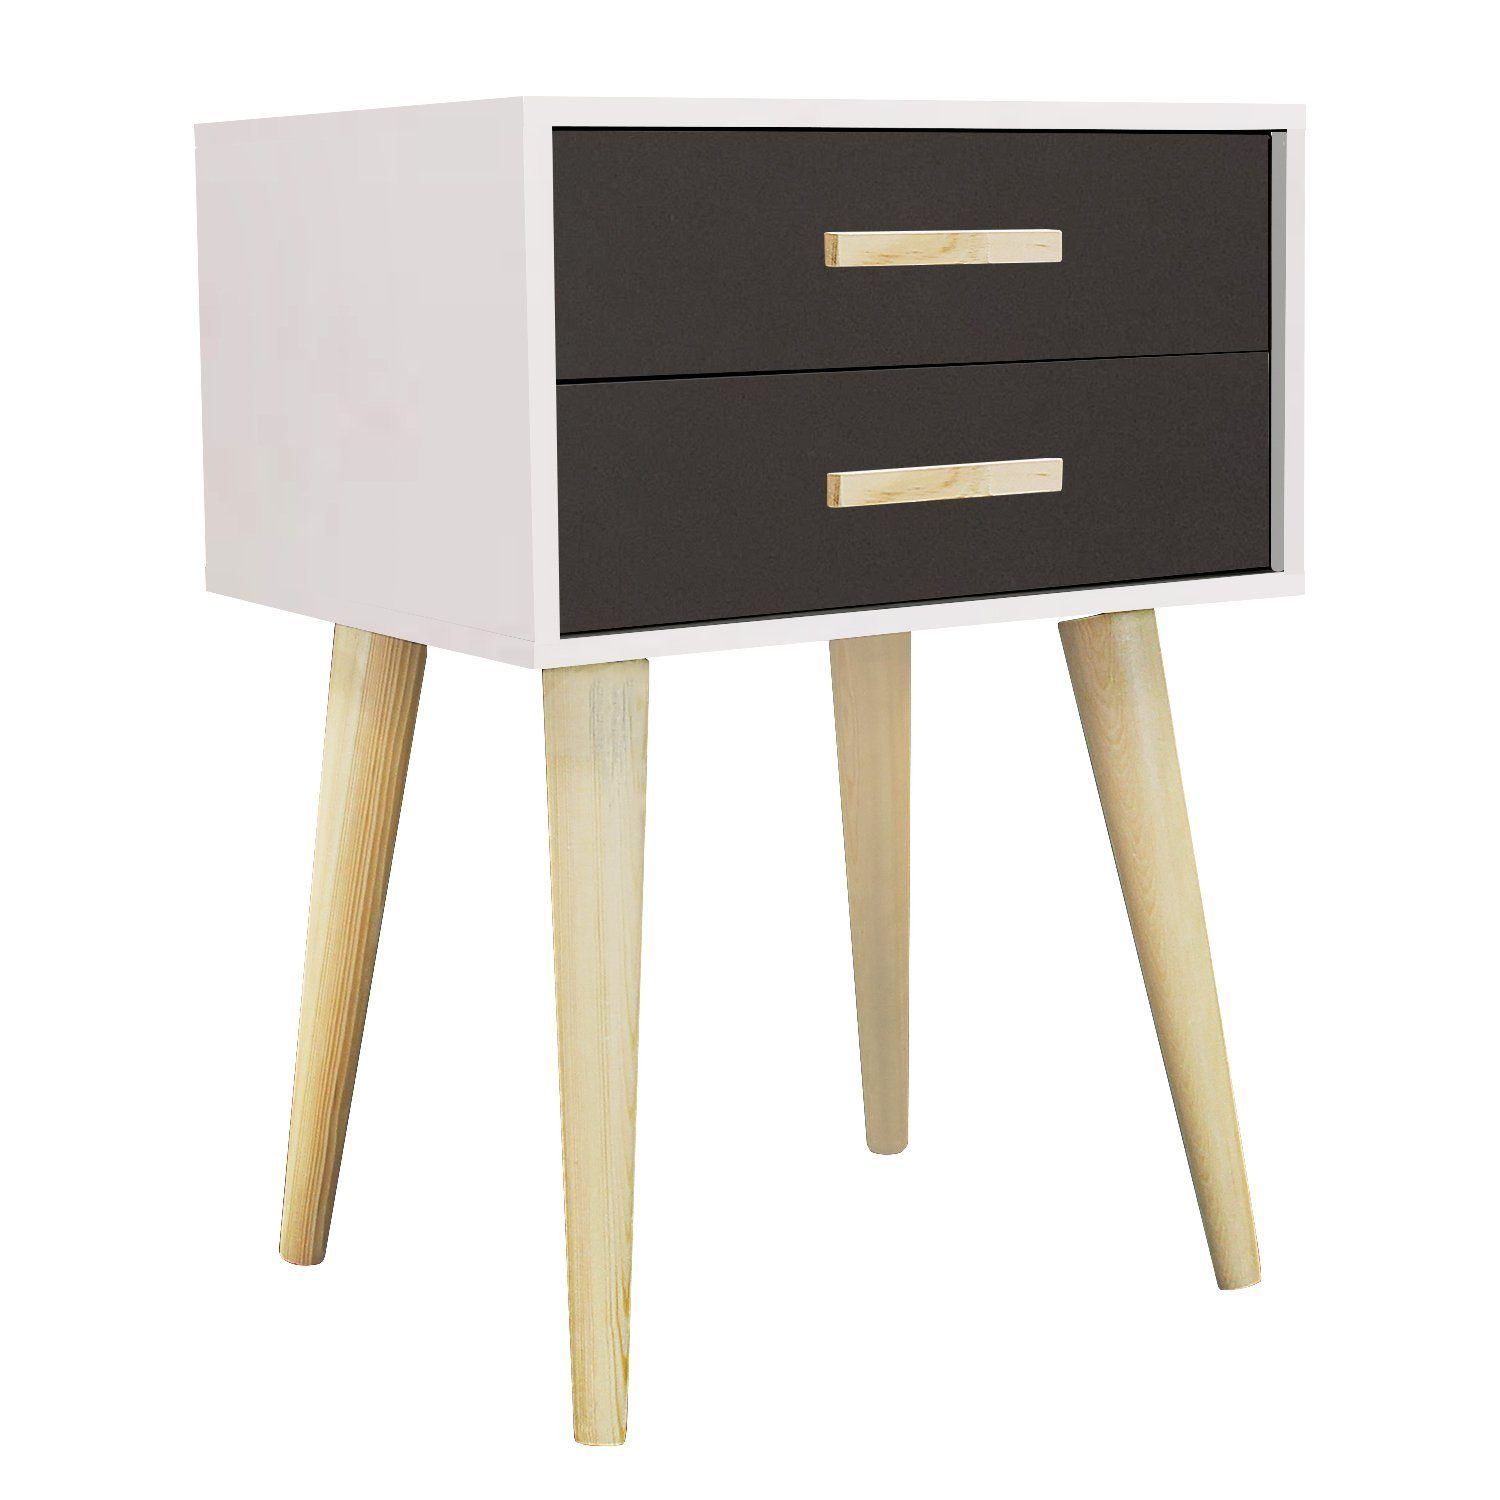 Jerry & Maggie - Nightstand Modern Fashion 4 Thin Long Legs Space Station - 2 Tier Cubic Night Stand Storage Bedside Table with 2 Drawer Real Natural Paulownia Wood   White & Navy